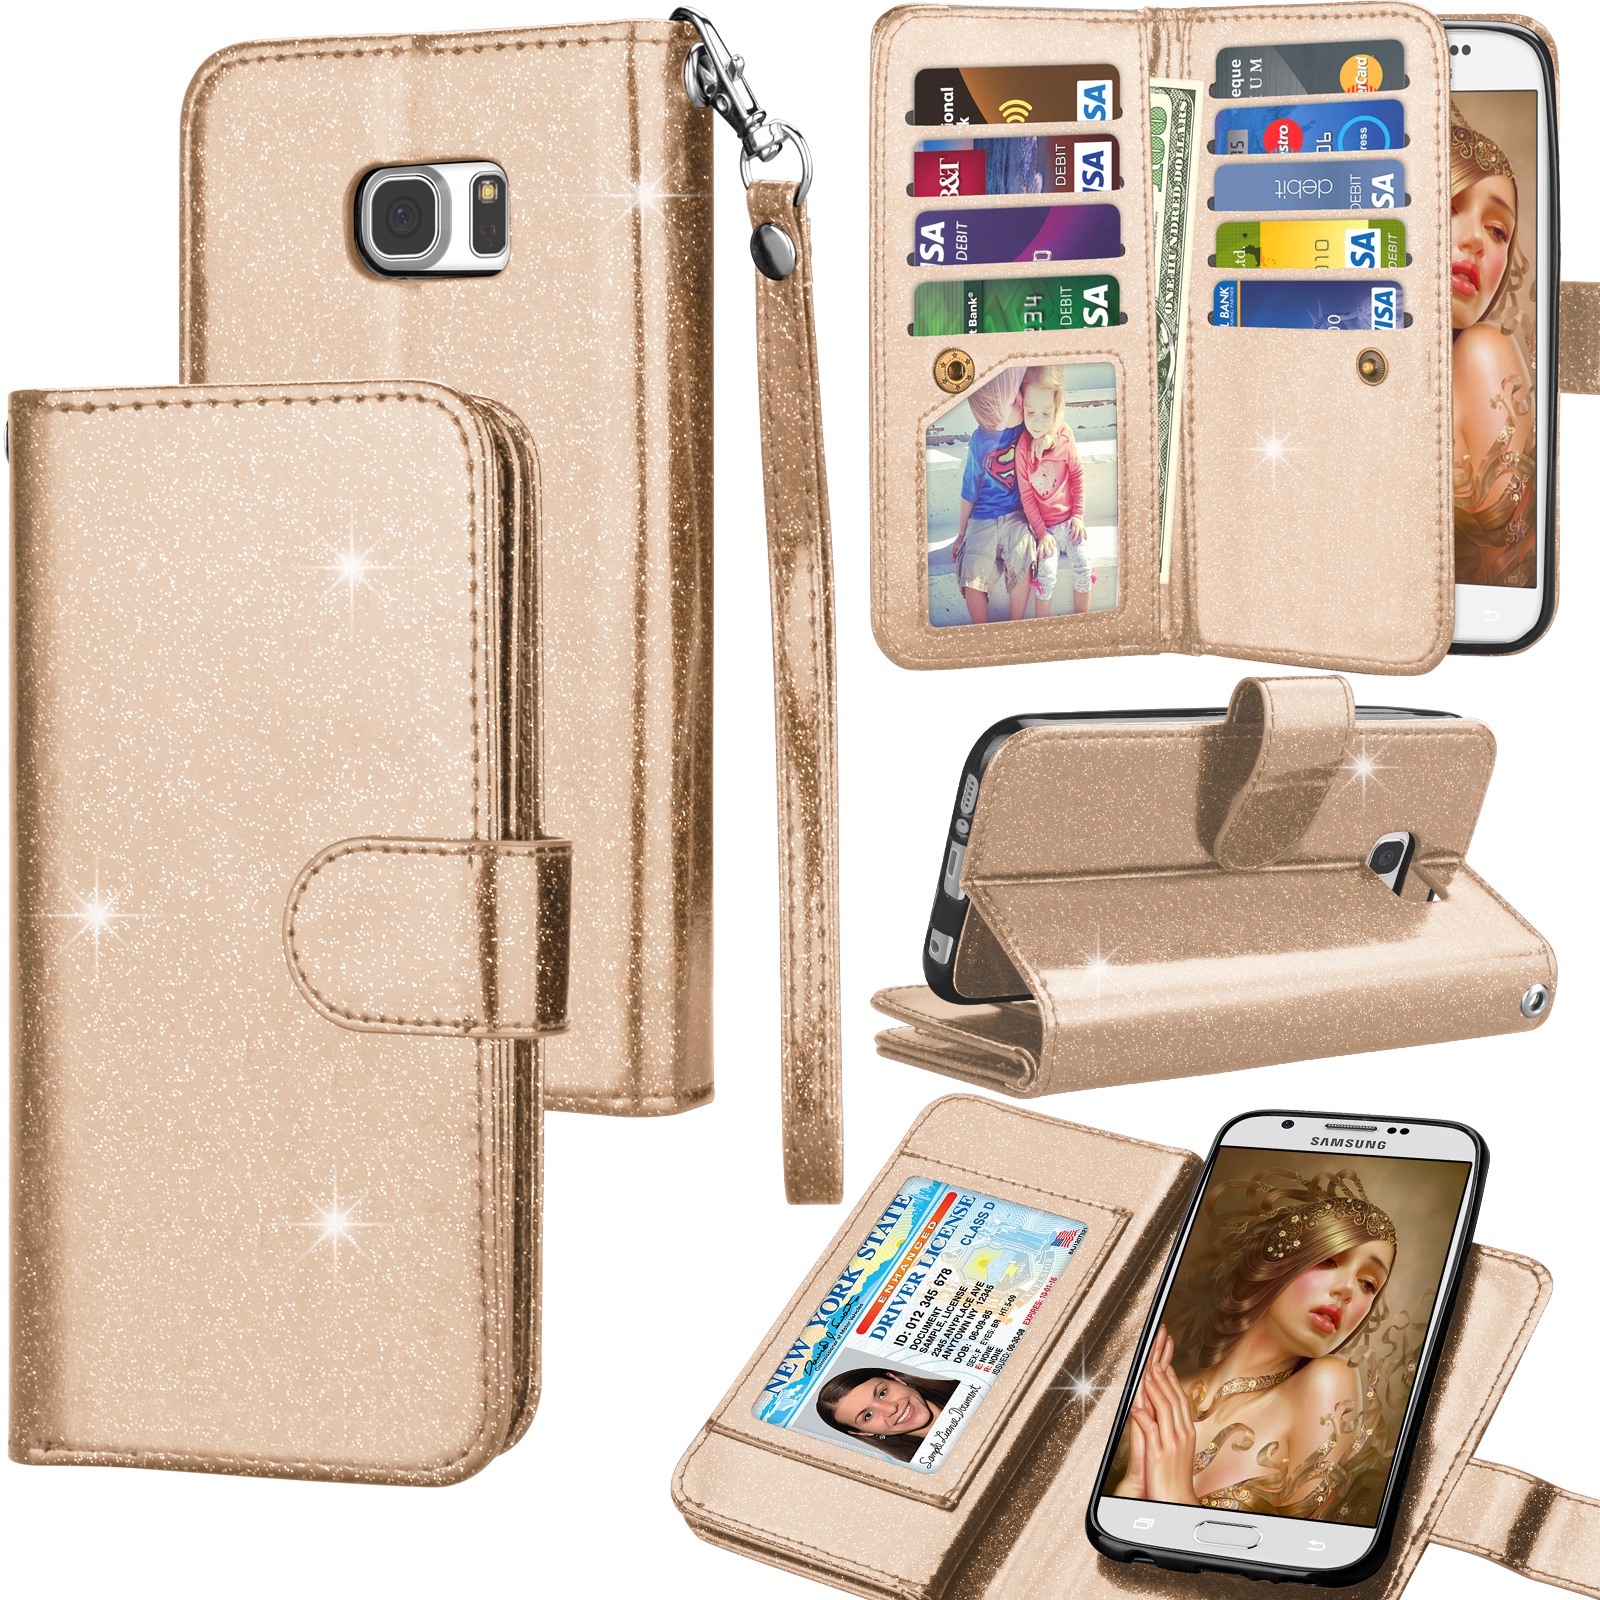 Galaxy S6 Case, Samsung Galaxy S6 Wallet Case, Galaxy S6 PU Leather Case, Tekcoo Luxury Shiny Bling Credit Card Slots Holder Carrying Folio Flip Cover [Detachable Magnetic Case] & Kickstand - Gold